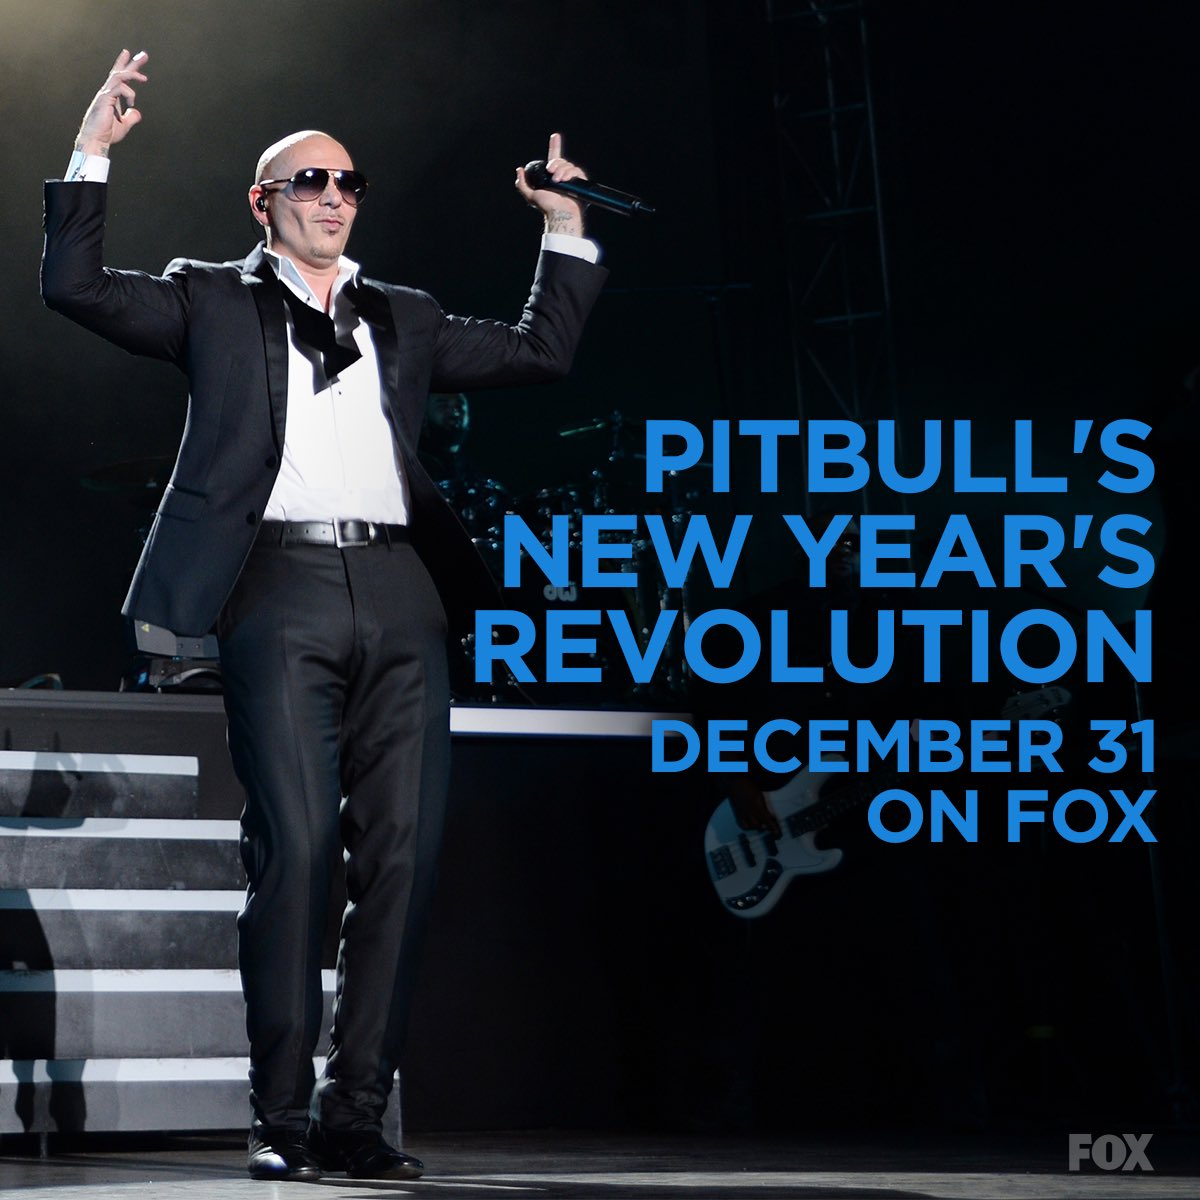 Going BIG for #PitbullNYE 2016. Who should party with me in Miami? https://t.co/NW604bpMdh